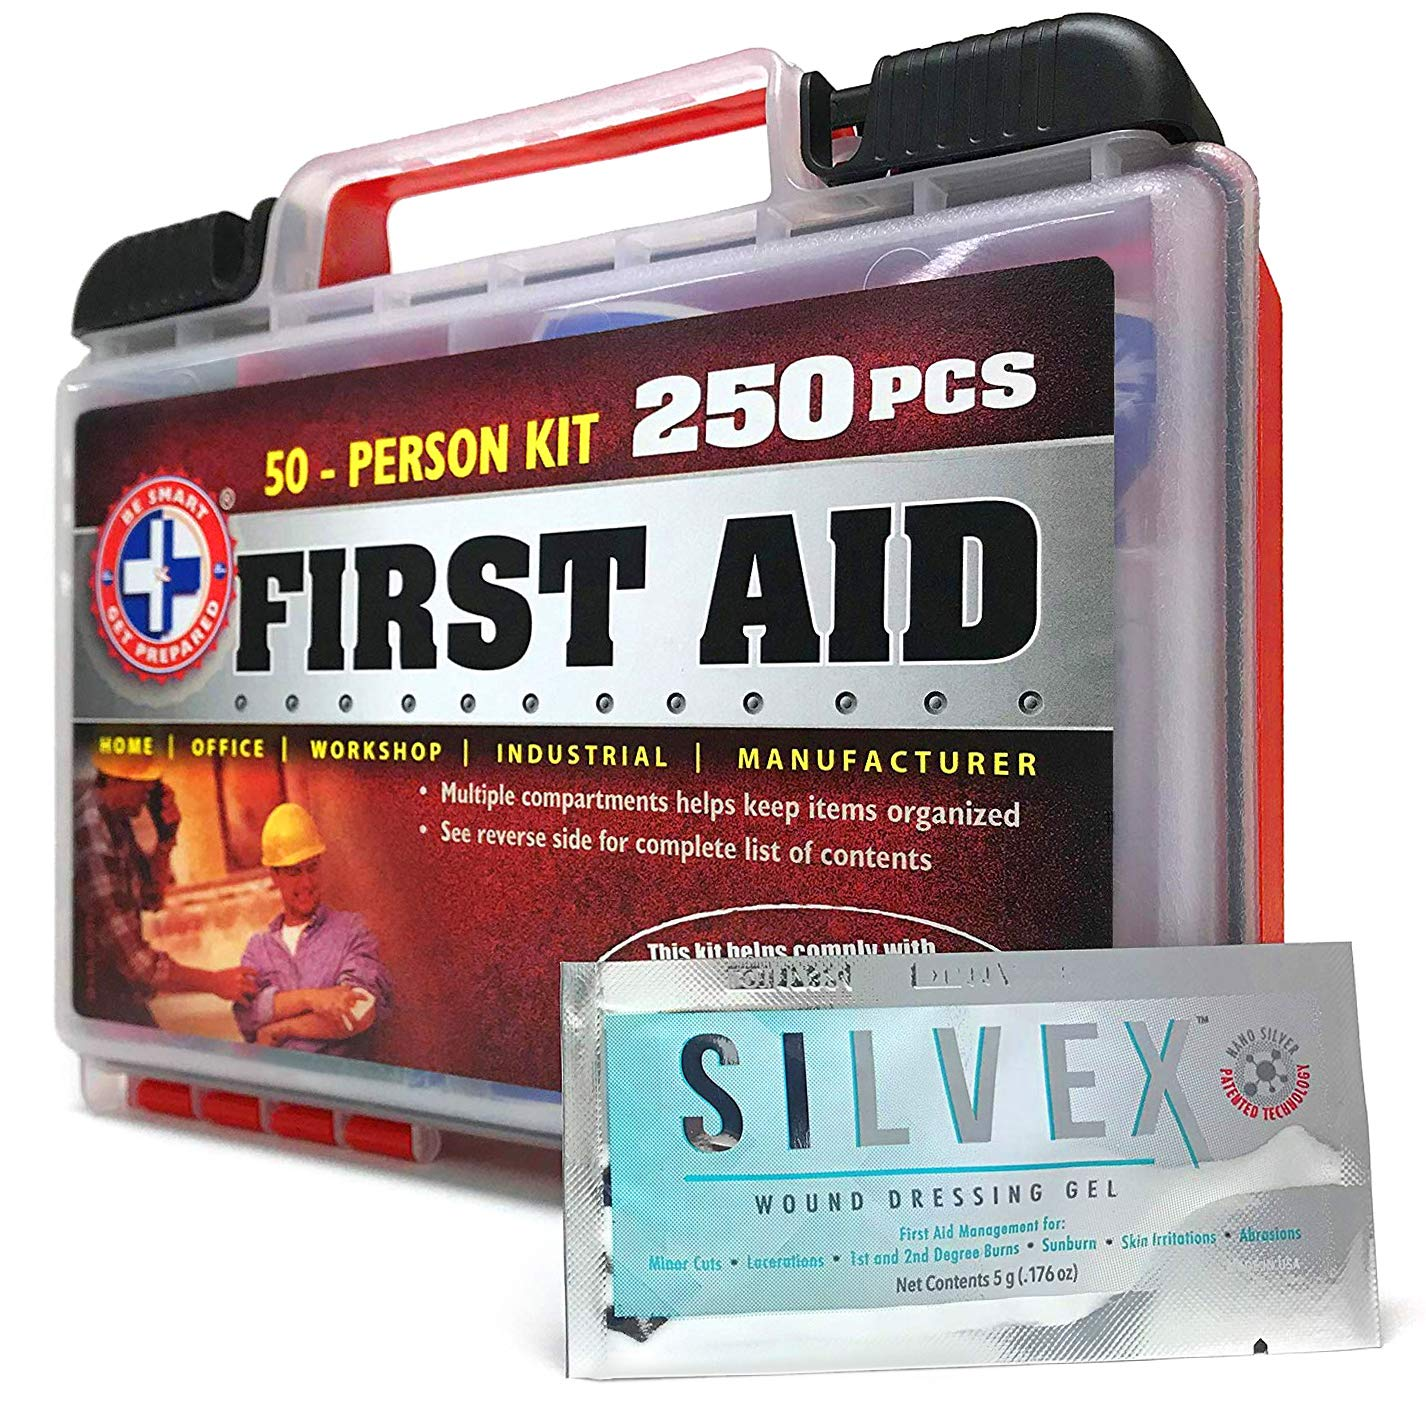 ''Be Smart Get Prepared 250 Piece First Aid Kit, Exceeds OSHA ANSI Standards for 50 People - Office, Home, Car, School, Emergency, Survival, Camping, Hunting, and Sports''